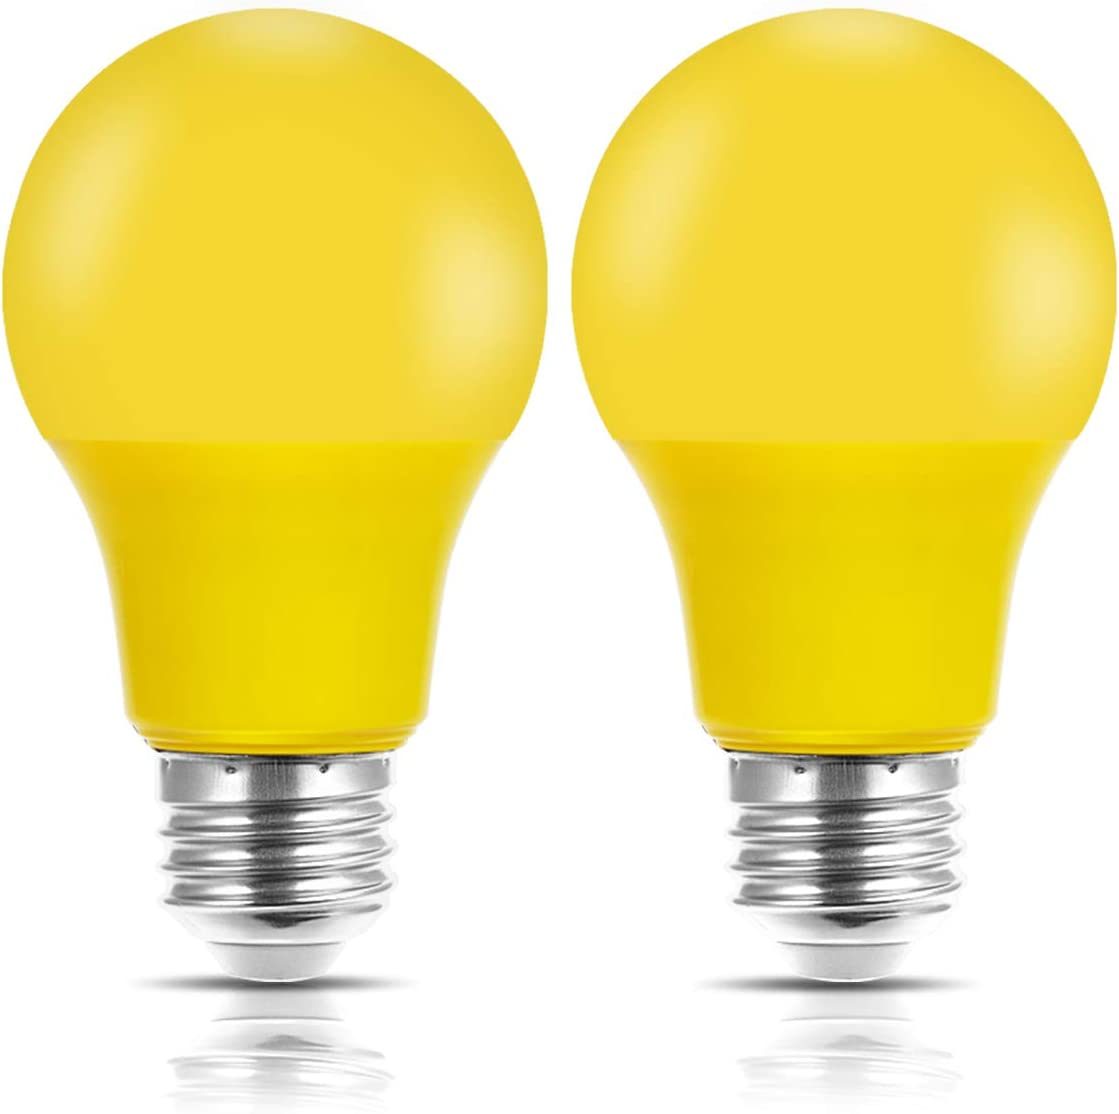 Yellow Bug Light Bulb, JandCase Holiday Decoration LED Bulb 40W Equivalent, 5W, A19 Outdoor Color Lights with E26 Medium Base, Porch, Home Lighting, Christmas Decor, Not Dimmable, Pack of 2